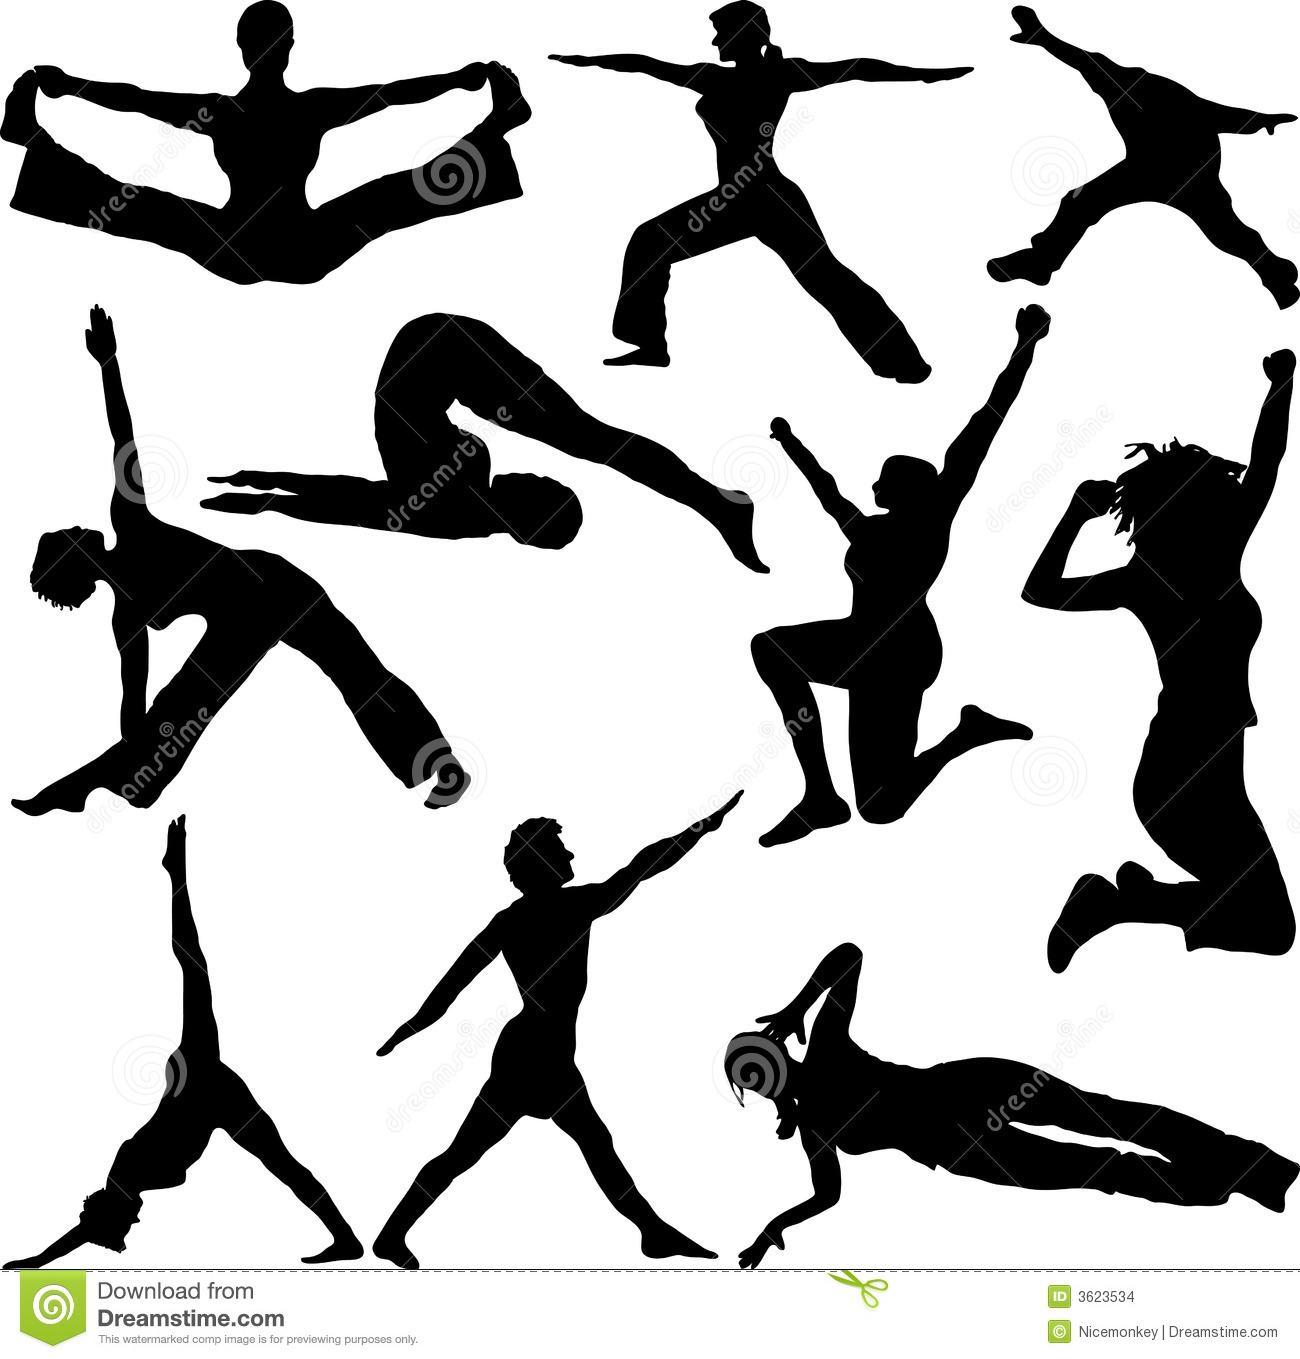 Be fit clipart svg royalty free stock Breakdance Stock Illustrations – 900 Breakdance Stock ... svg royalty free stock